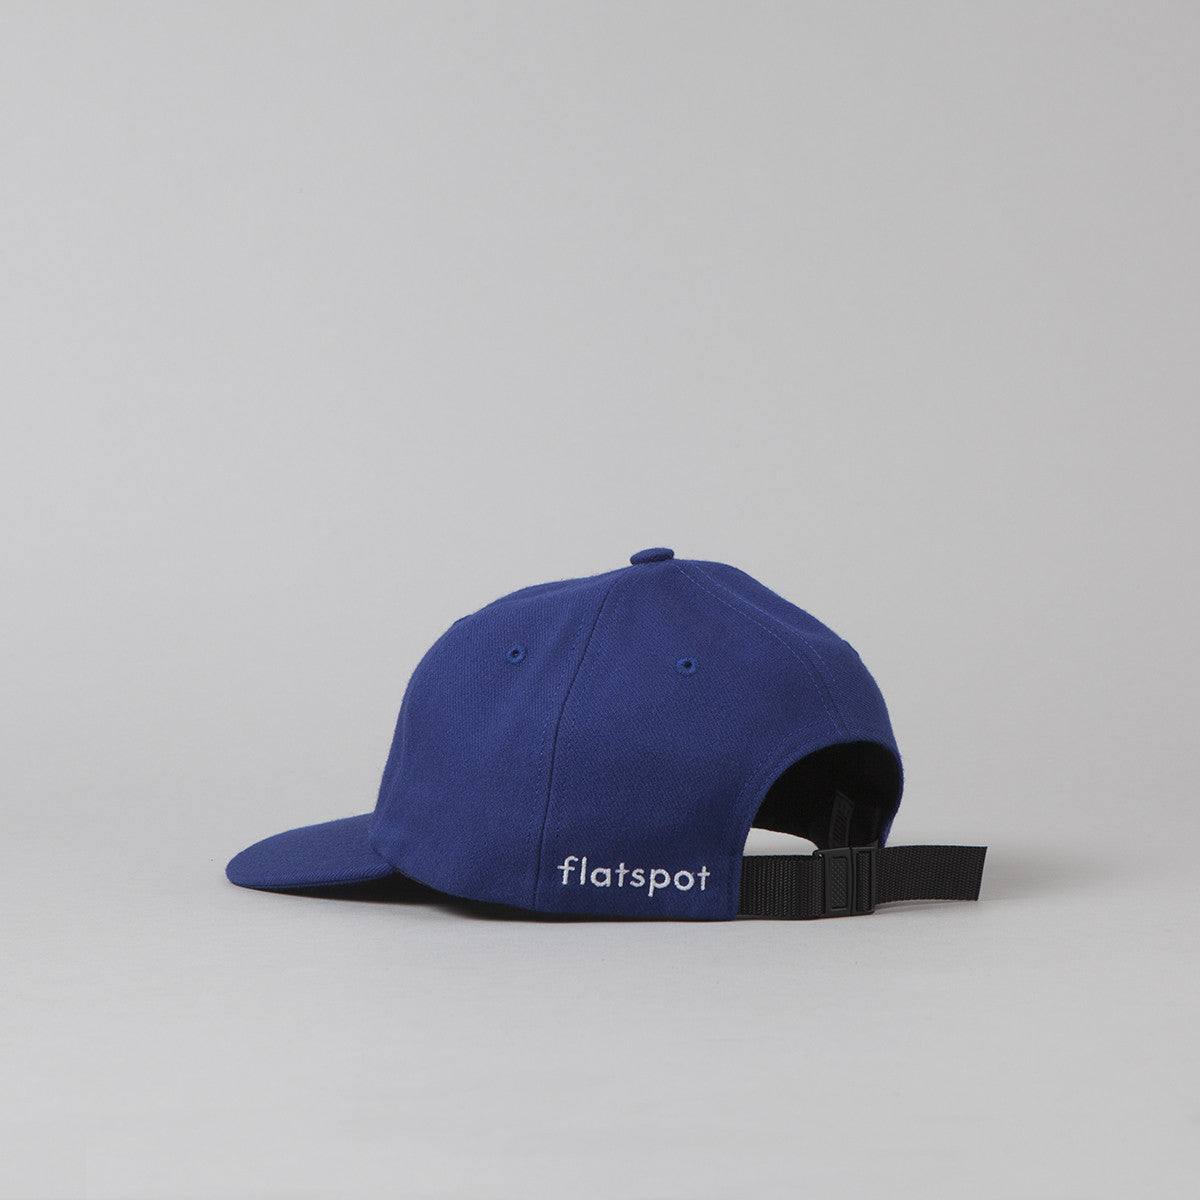 Flatspot Wool Polo Cap - Royal